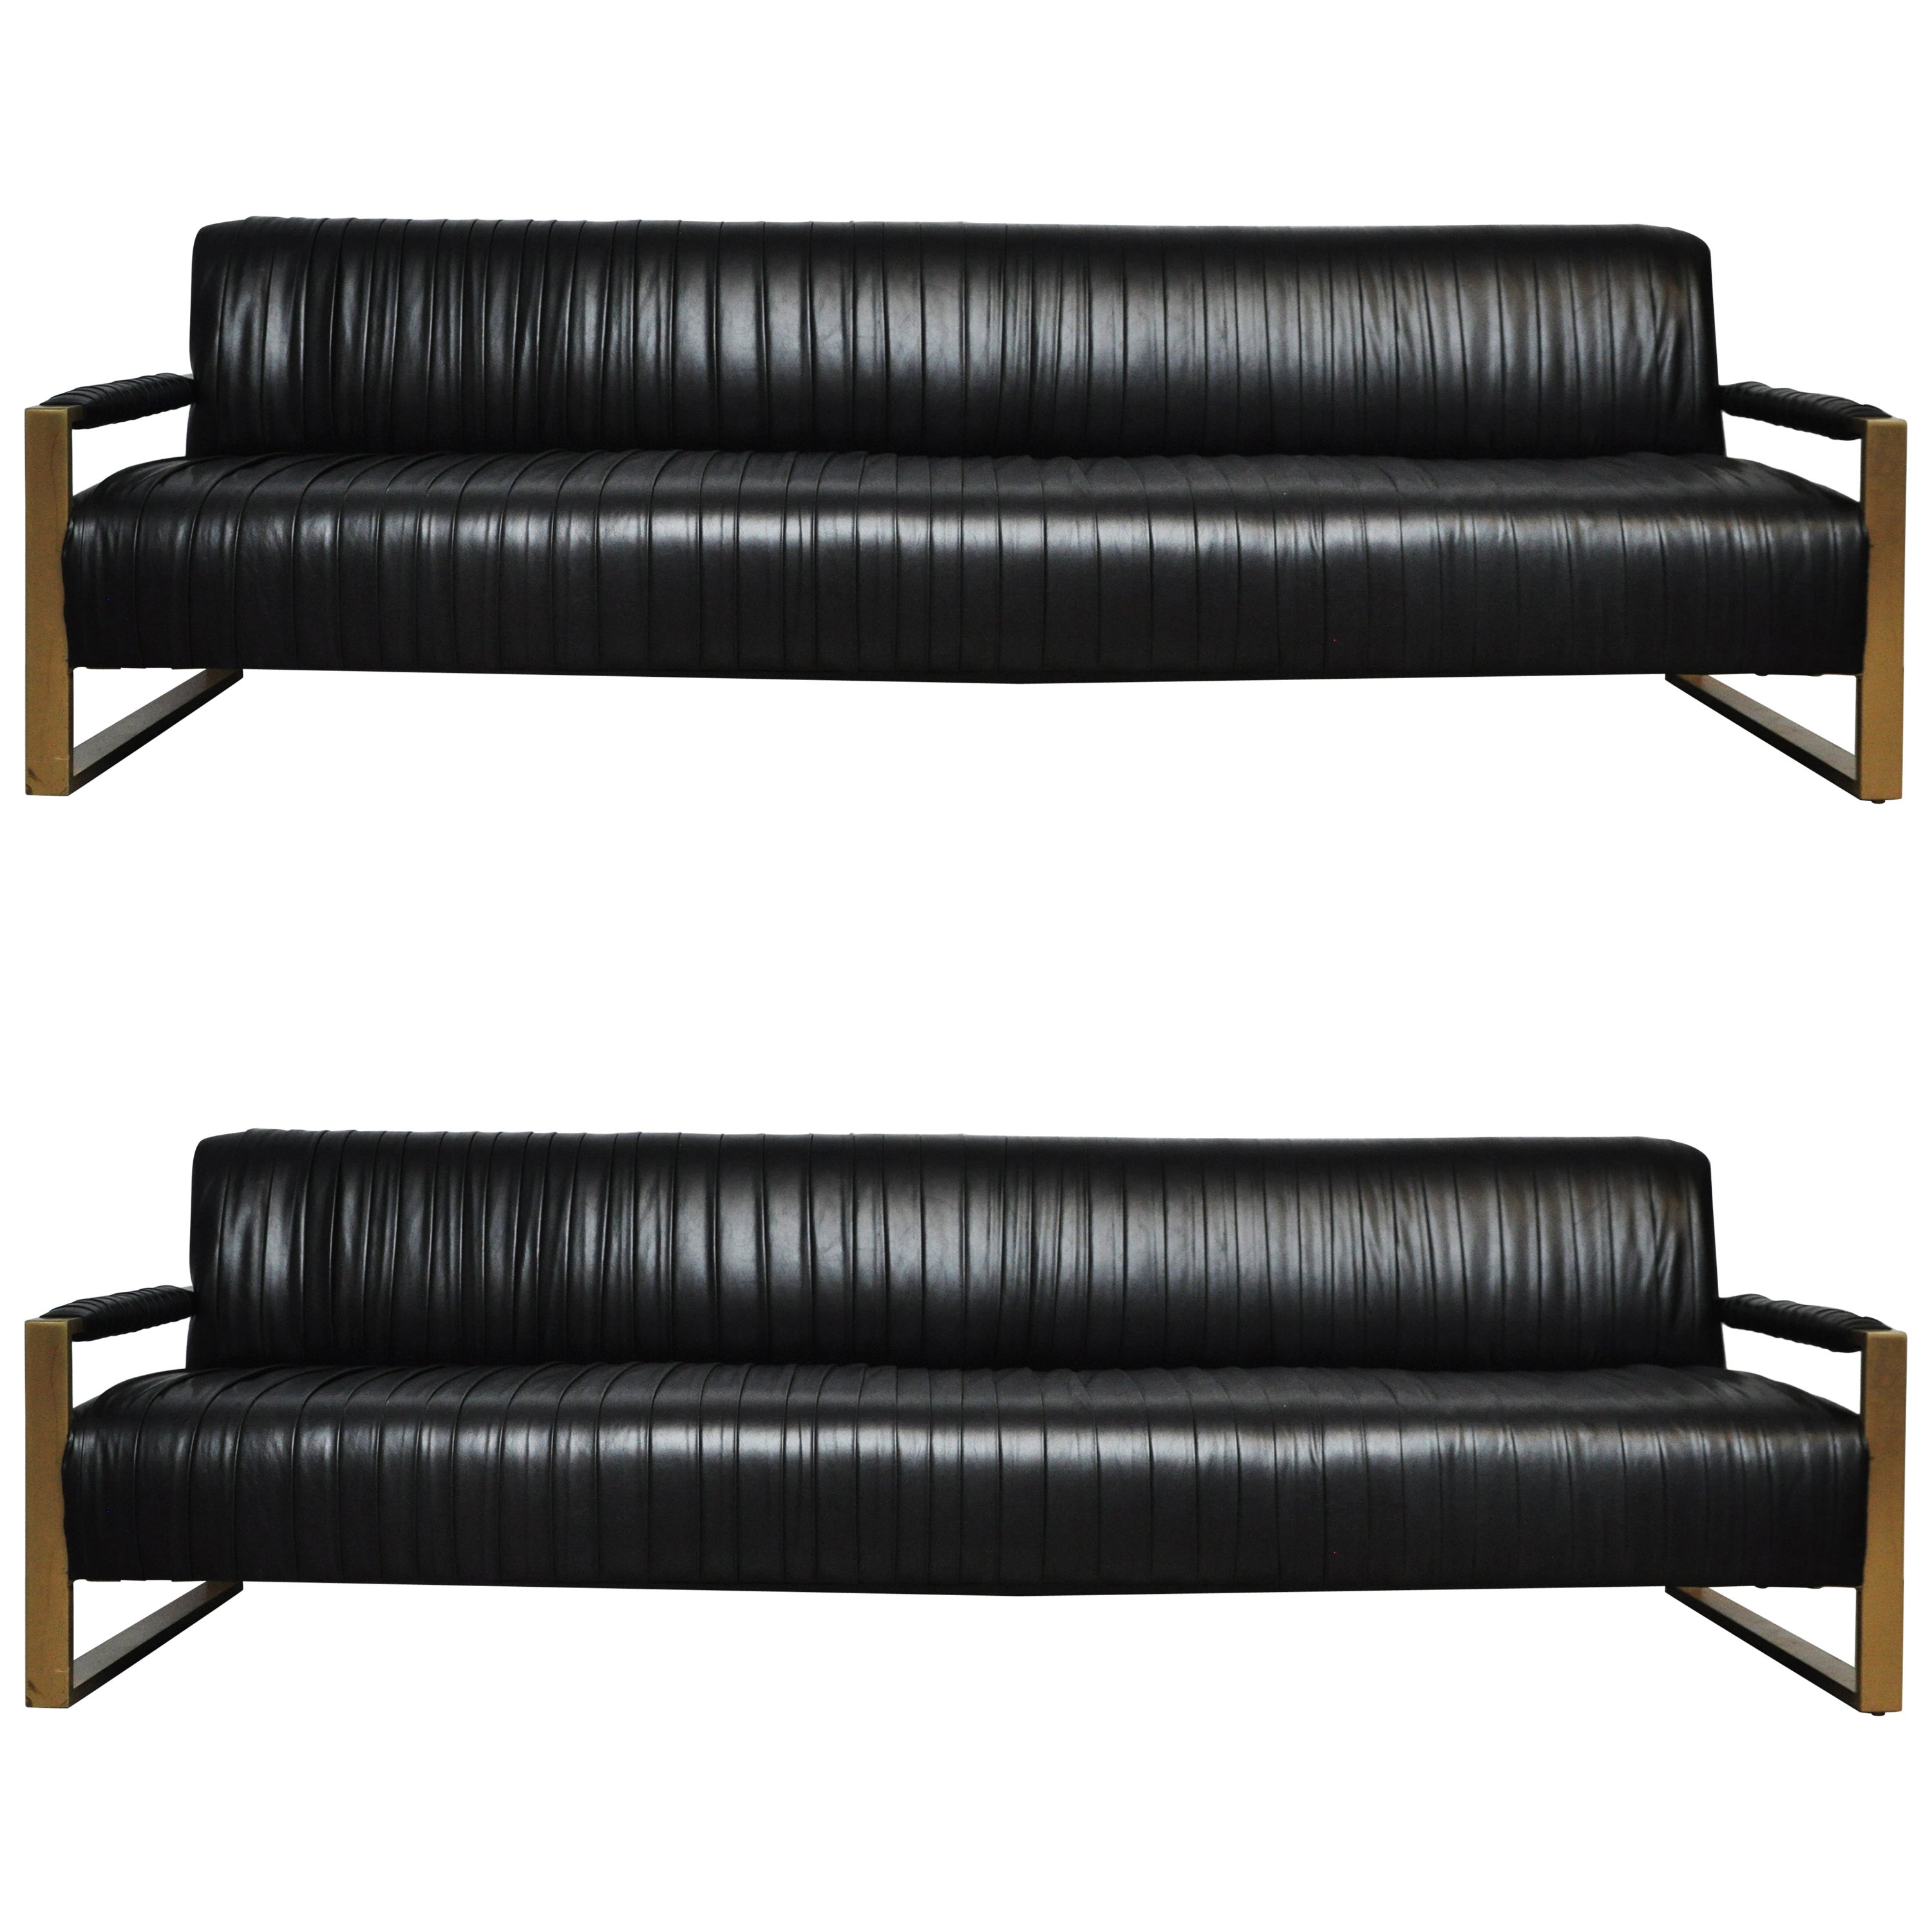 Modern Drama Pleated Leather Sofa with Brushed Brass Frames at 1stdibs